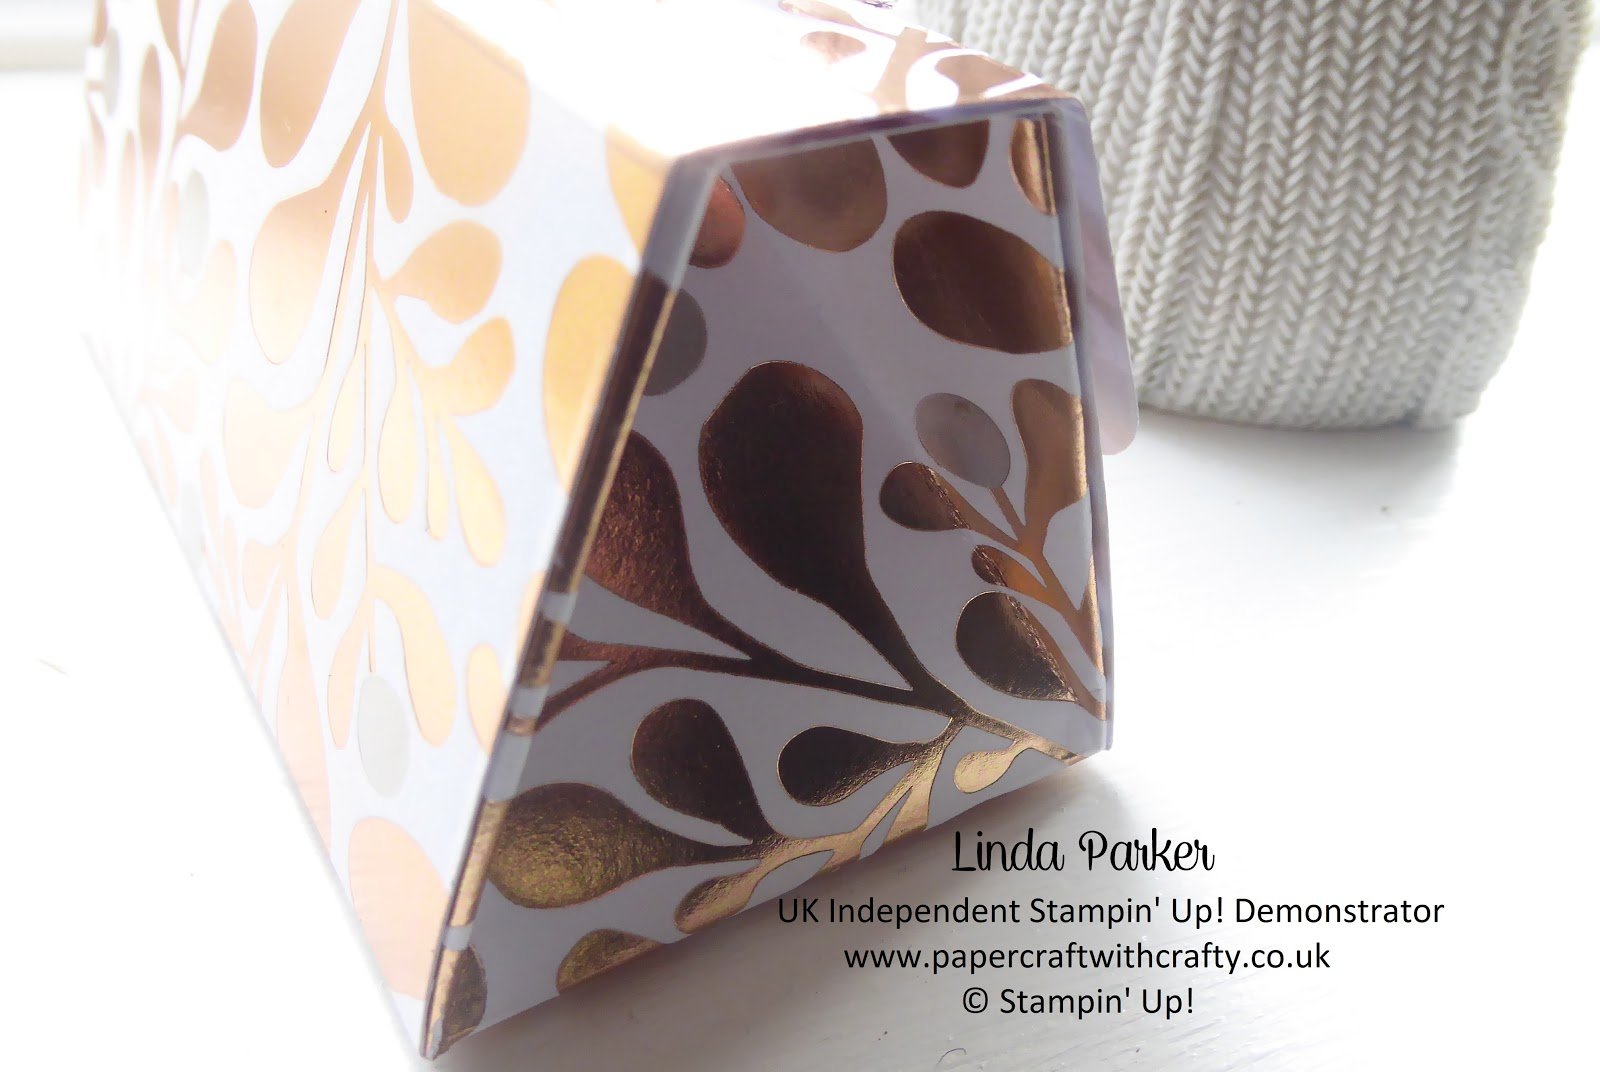 dce5eedb5a Linda Parker UK Independent Stampin  Up! Demonstrator from Hampshire ...